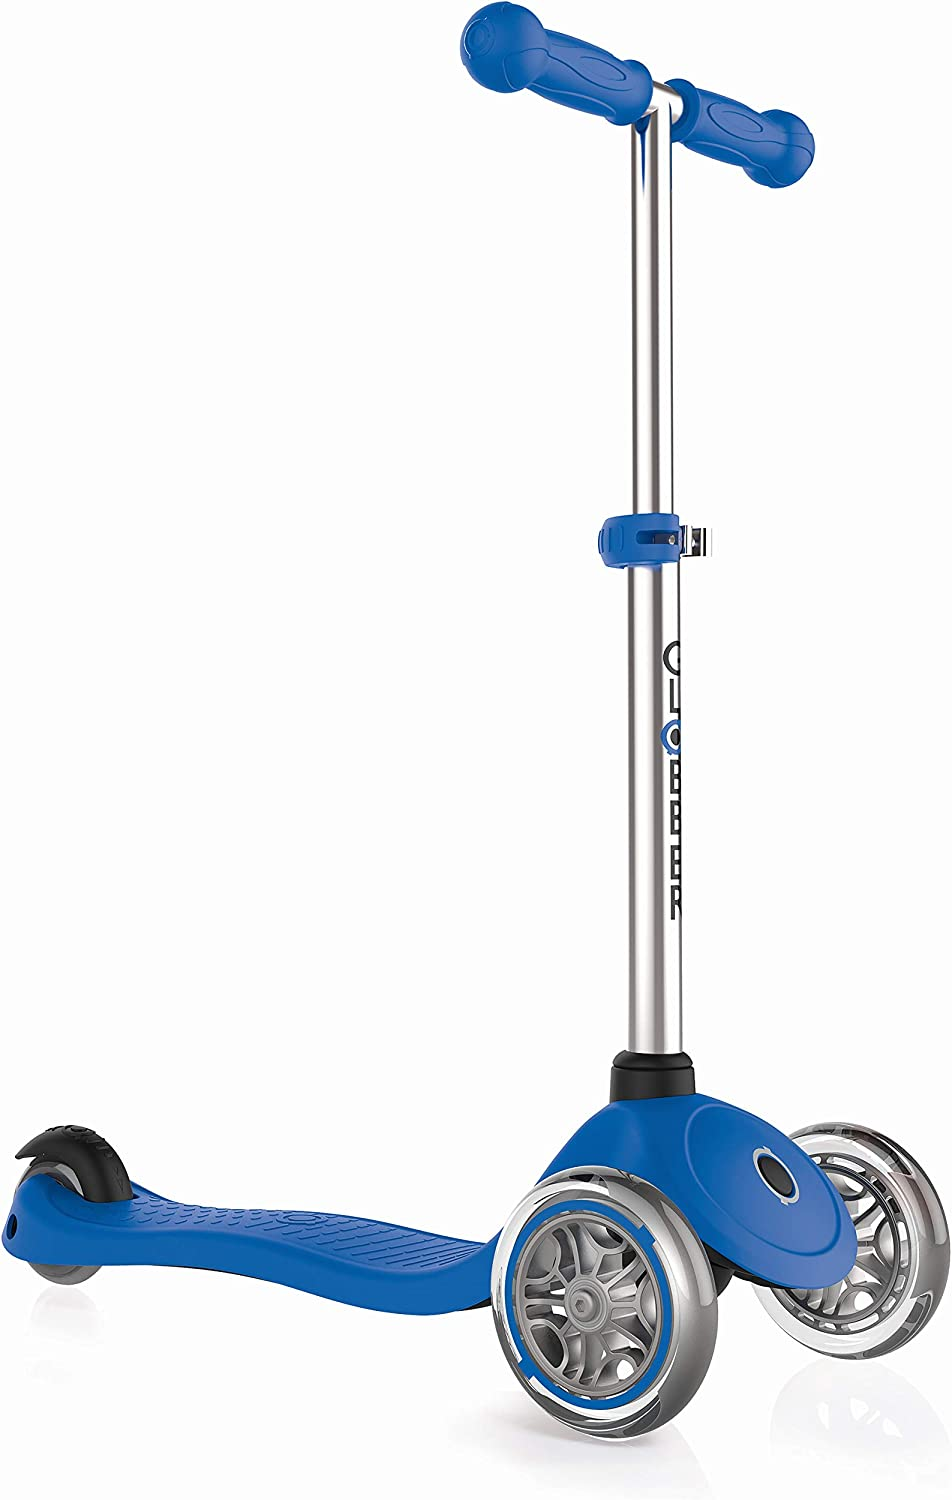 8. Globber Primo 3-Wheel Adjustable Height Kick Scooter